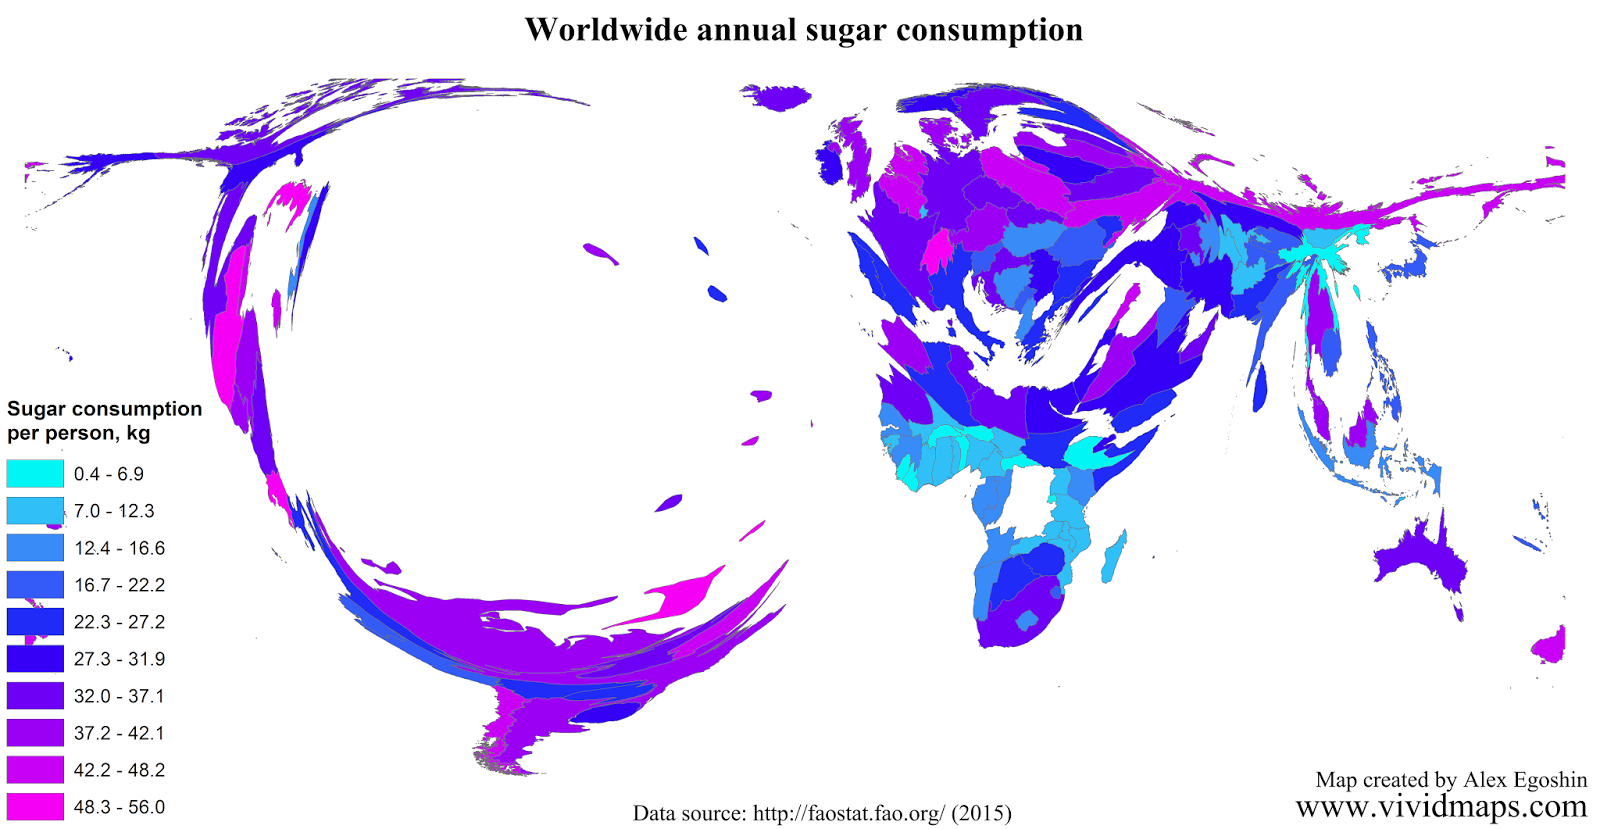 Worldwide annual sugar consumption